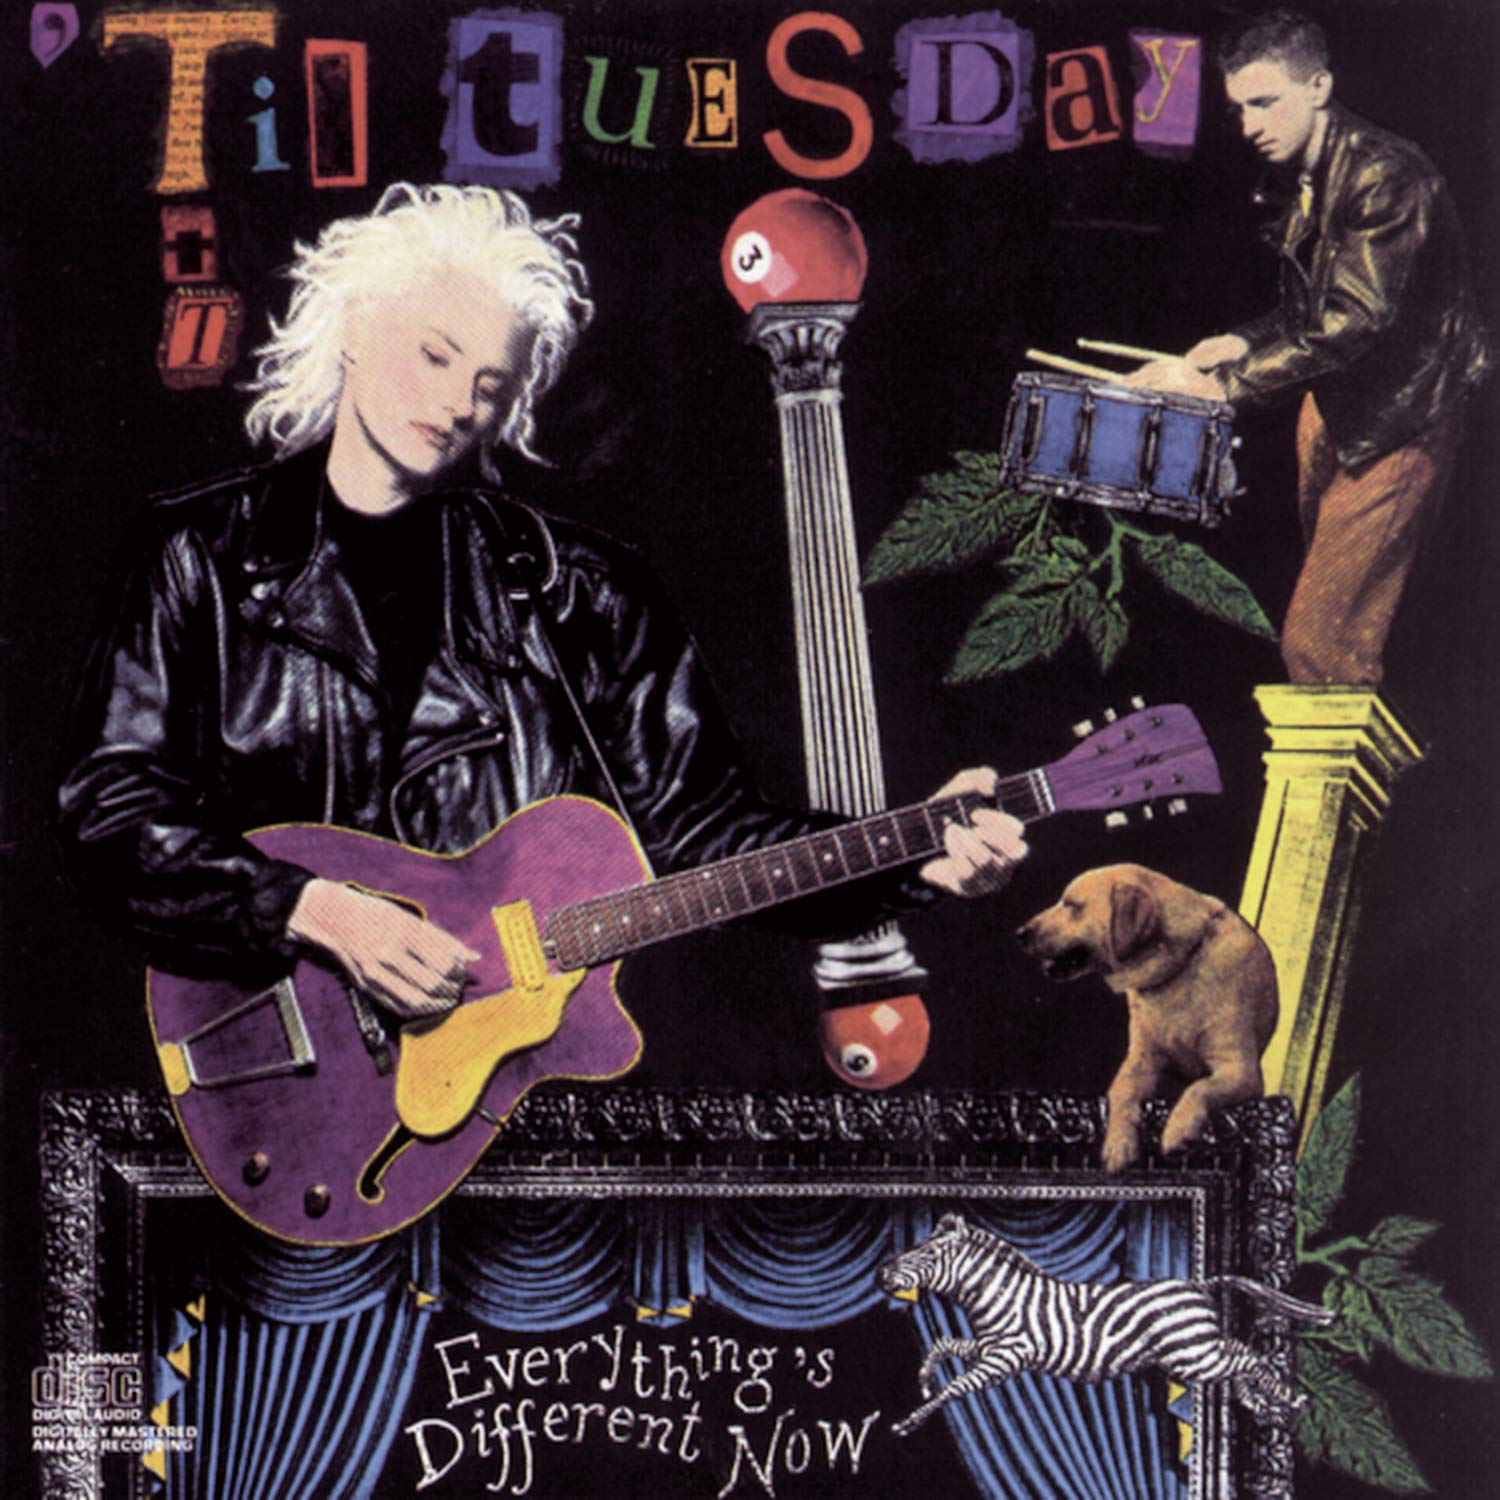 'Til Tuesday - Everything's Different Now (1998) [FLAC] Download